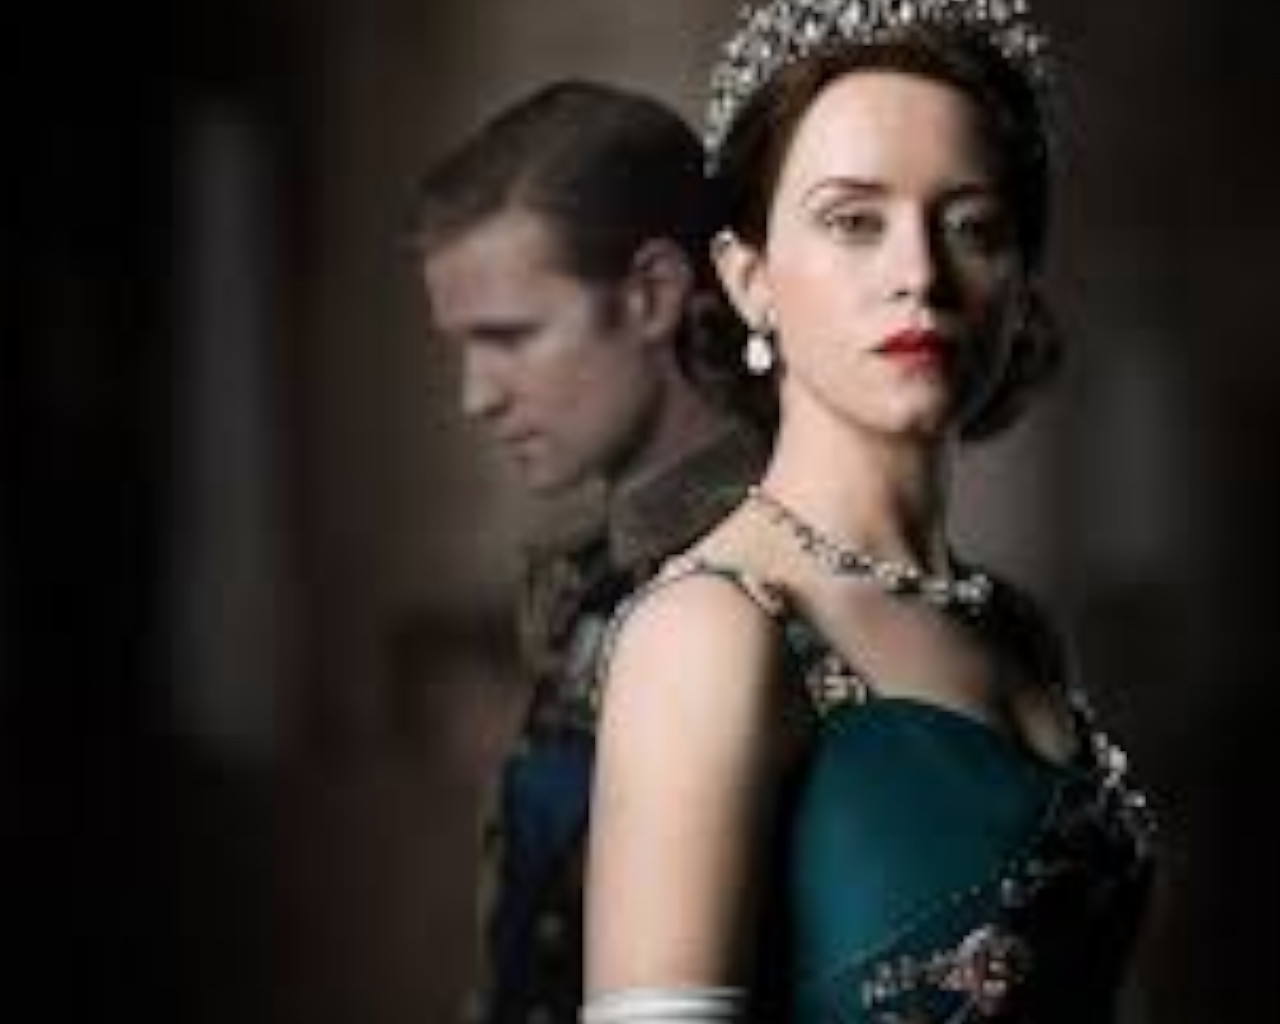 the crown,the crown actors,the crown season 3,the crown season 4,the crown season 5,the crown diana,the crown ηθοποιοι,the crown cast